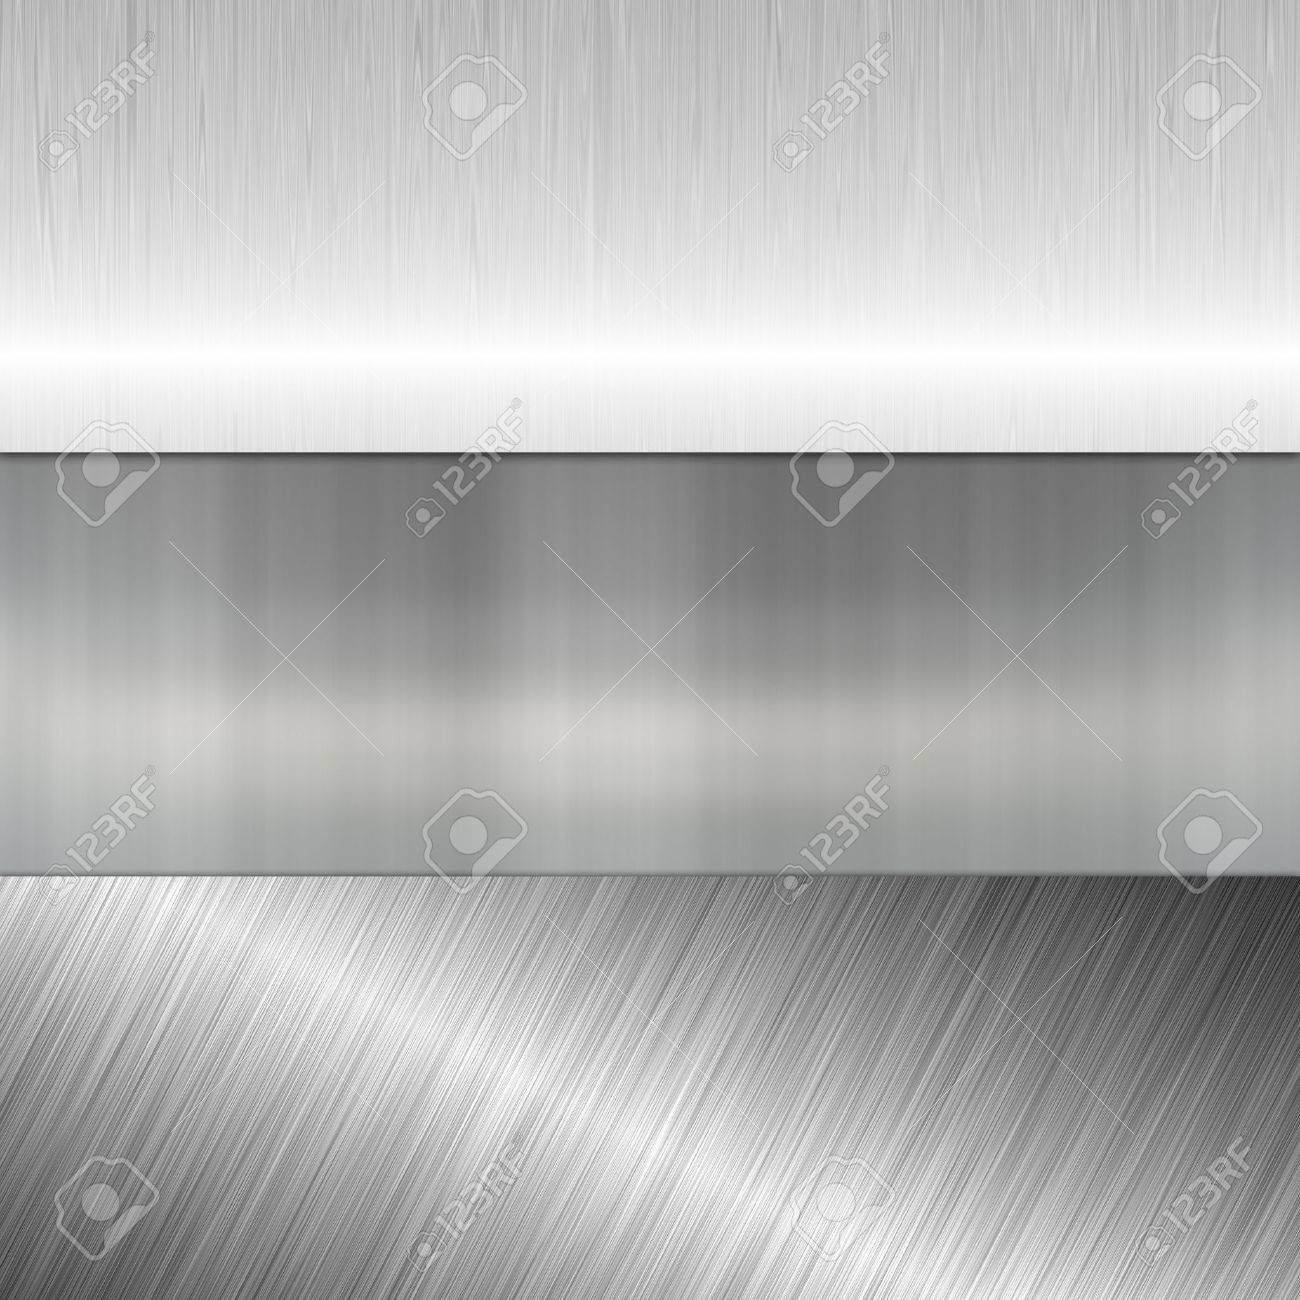 metal banners Stock Photo - 24668110